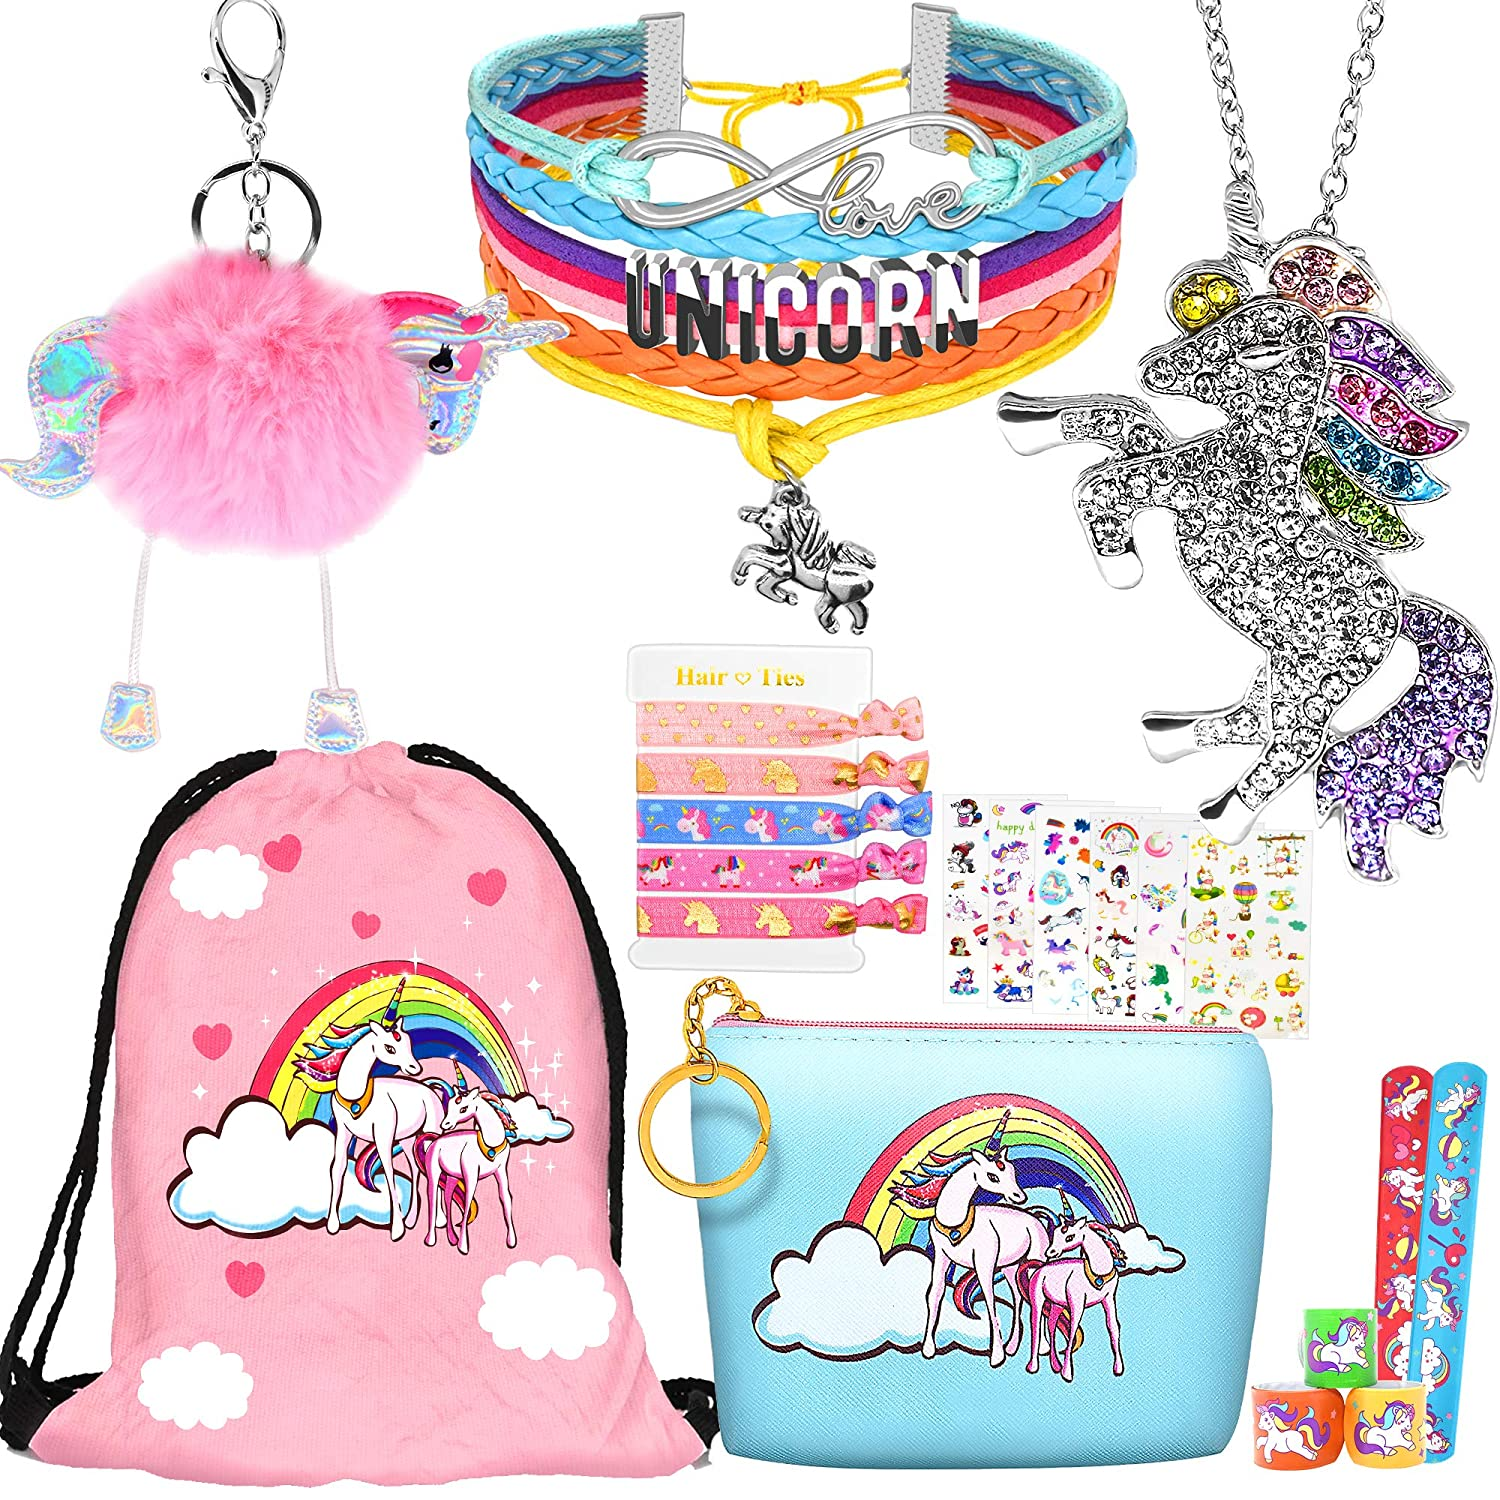 8 pcs Unicorn Gifts for Girls Teen Necklace Bracelet Jewelry Hair Ties Backpack Slap Bracelet Stickers Keychain Coin Purse Accessories Stuff Party Favors Birthday Gifts Set for Women by Hevout 91oSbkVT2BoL